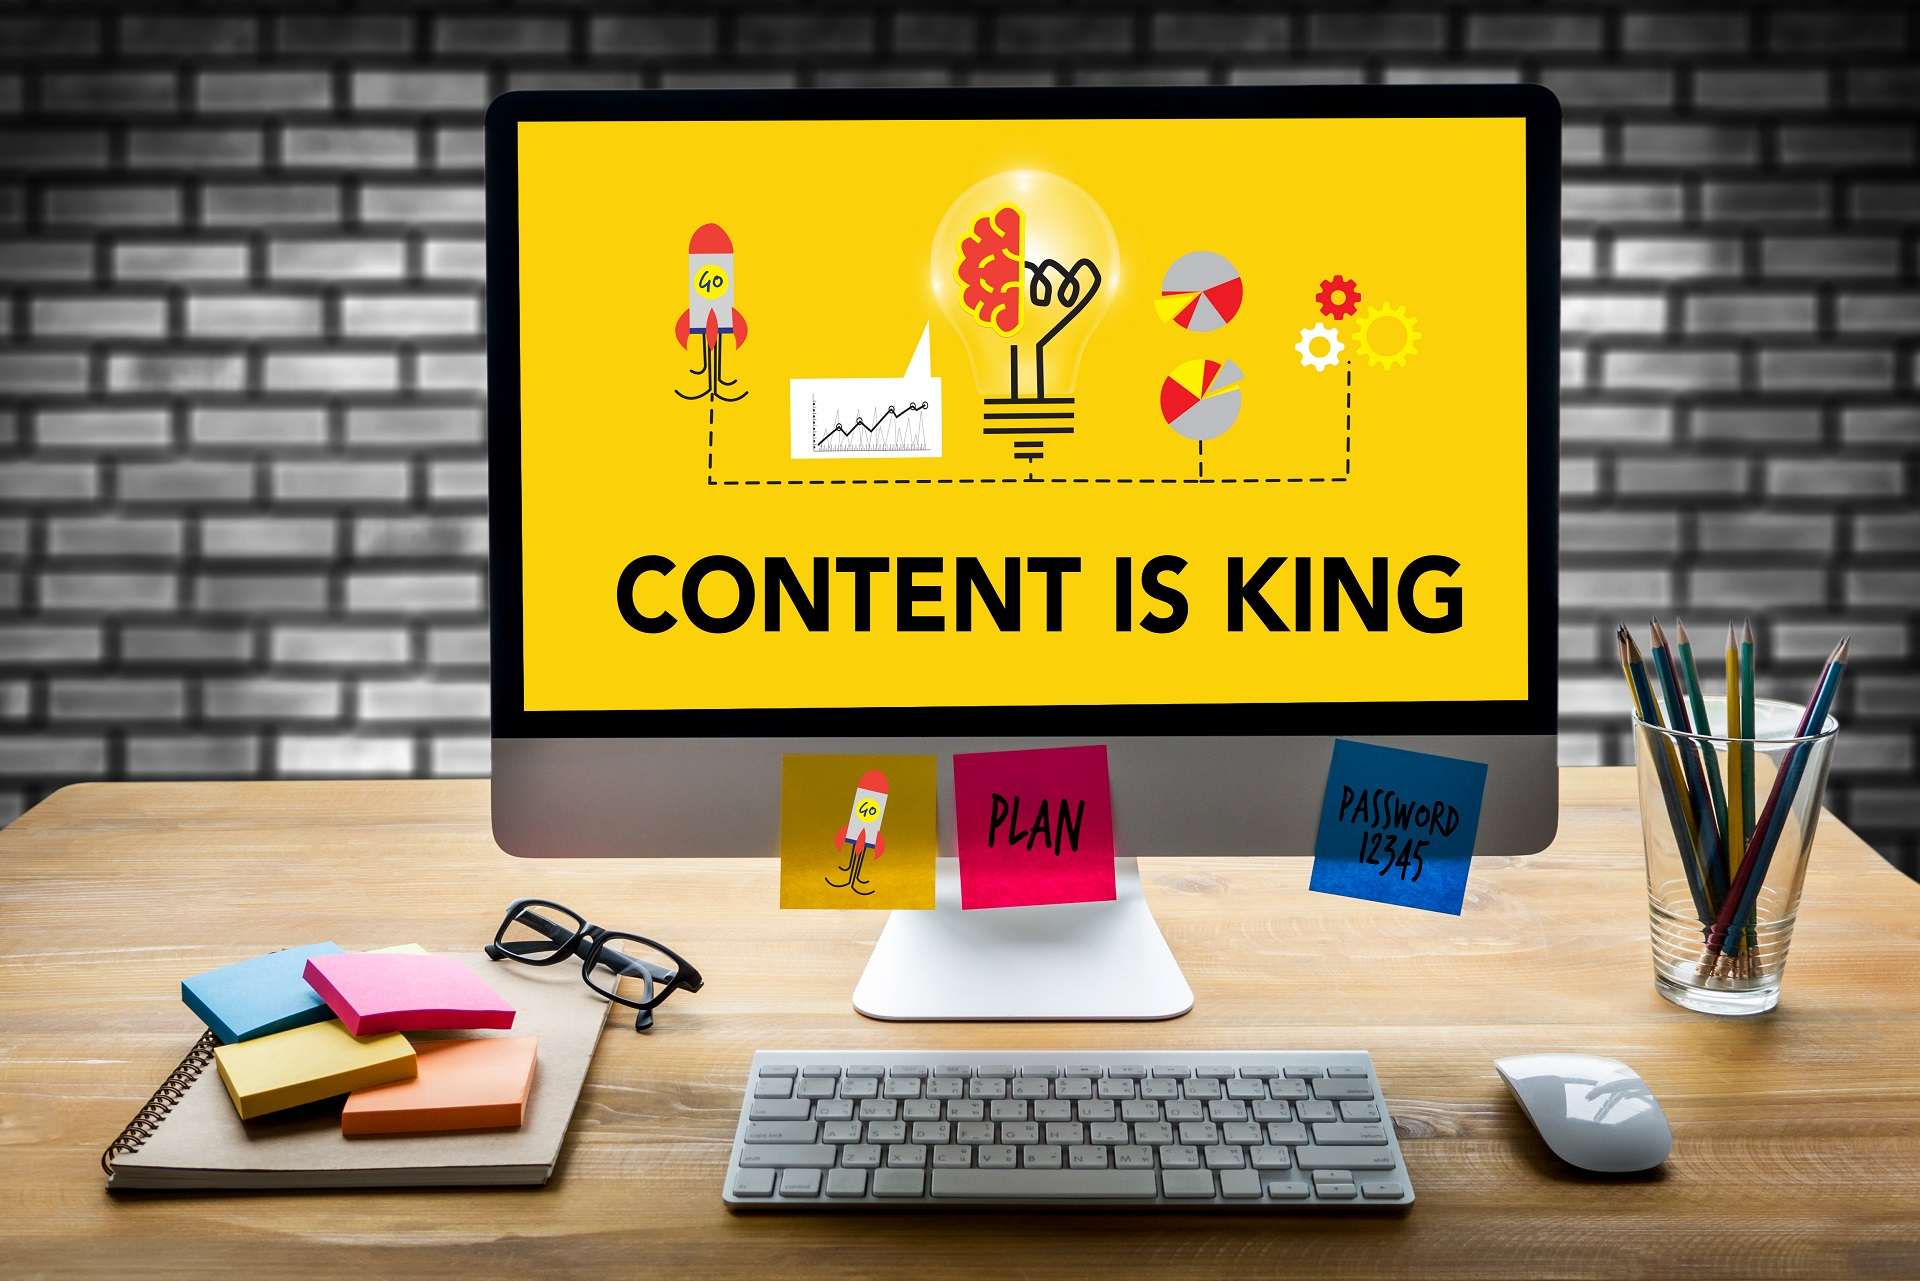 Content is king, but quality is what matters.